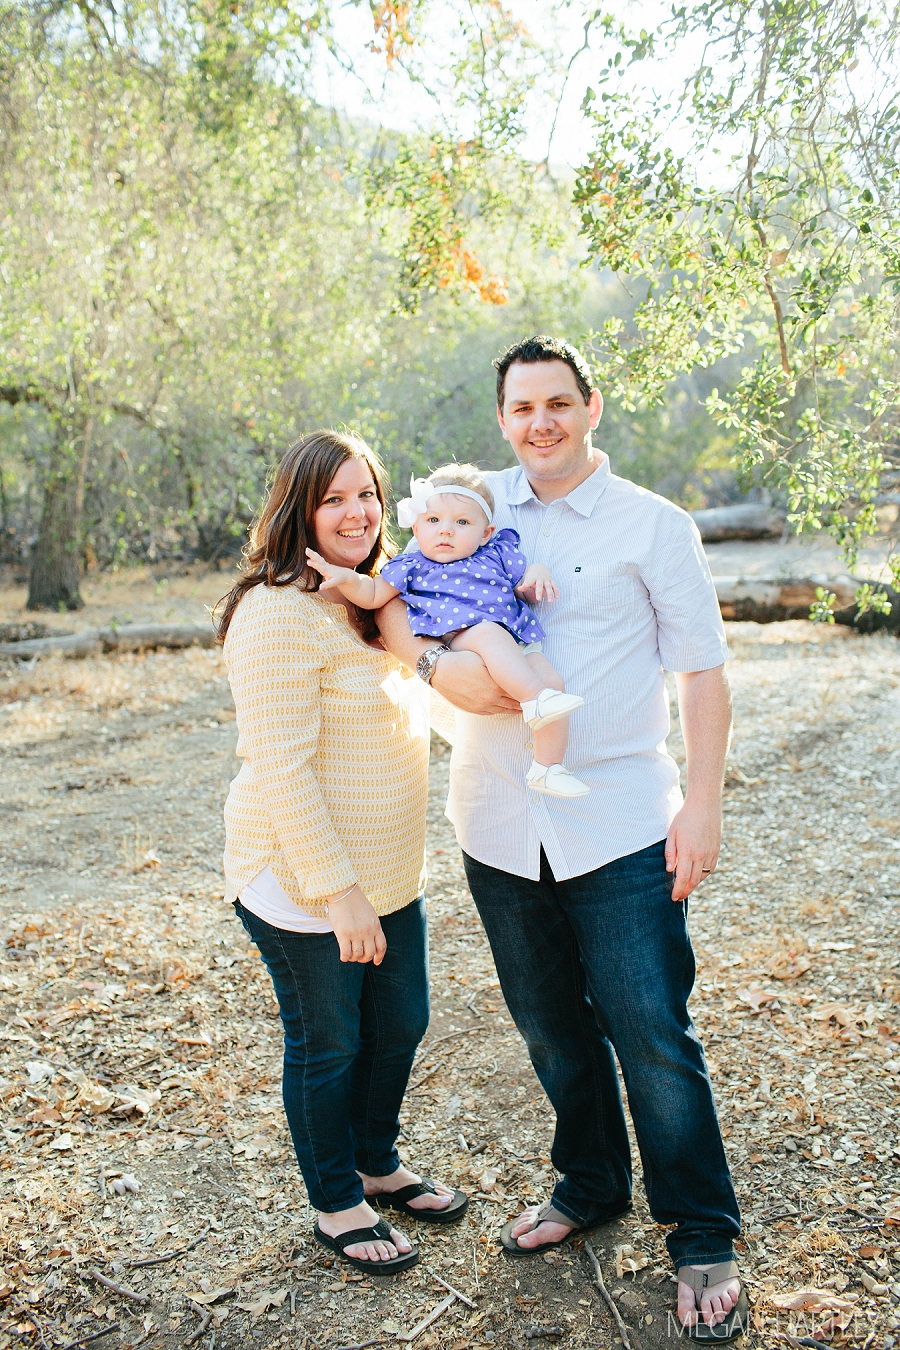 Megan Hartley Photography Orange County Family and Children's Photographer 6 month old photos 00003